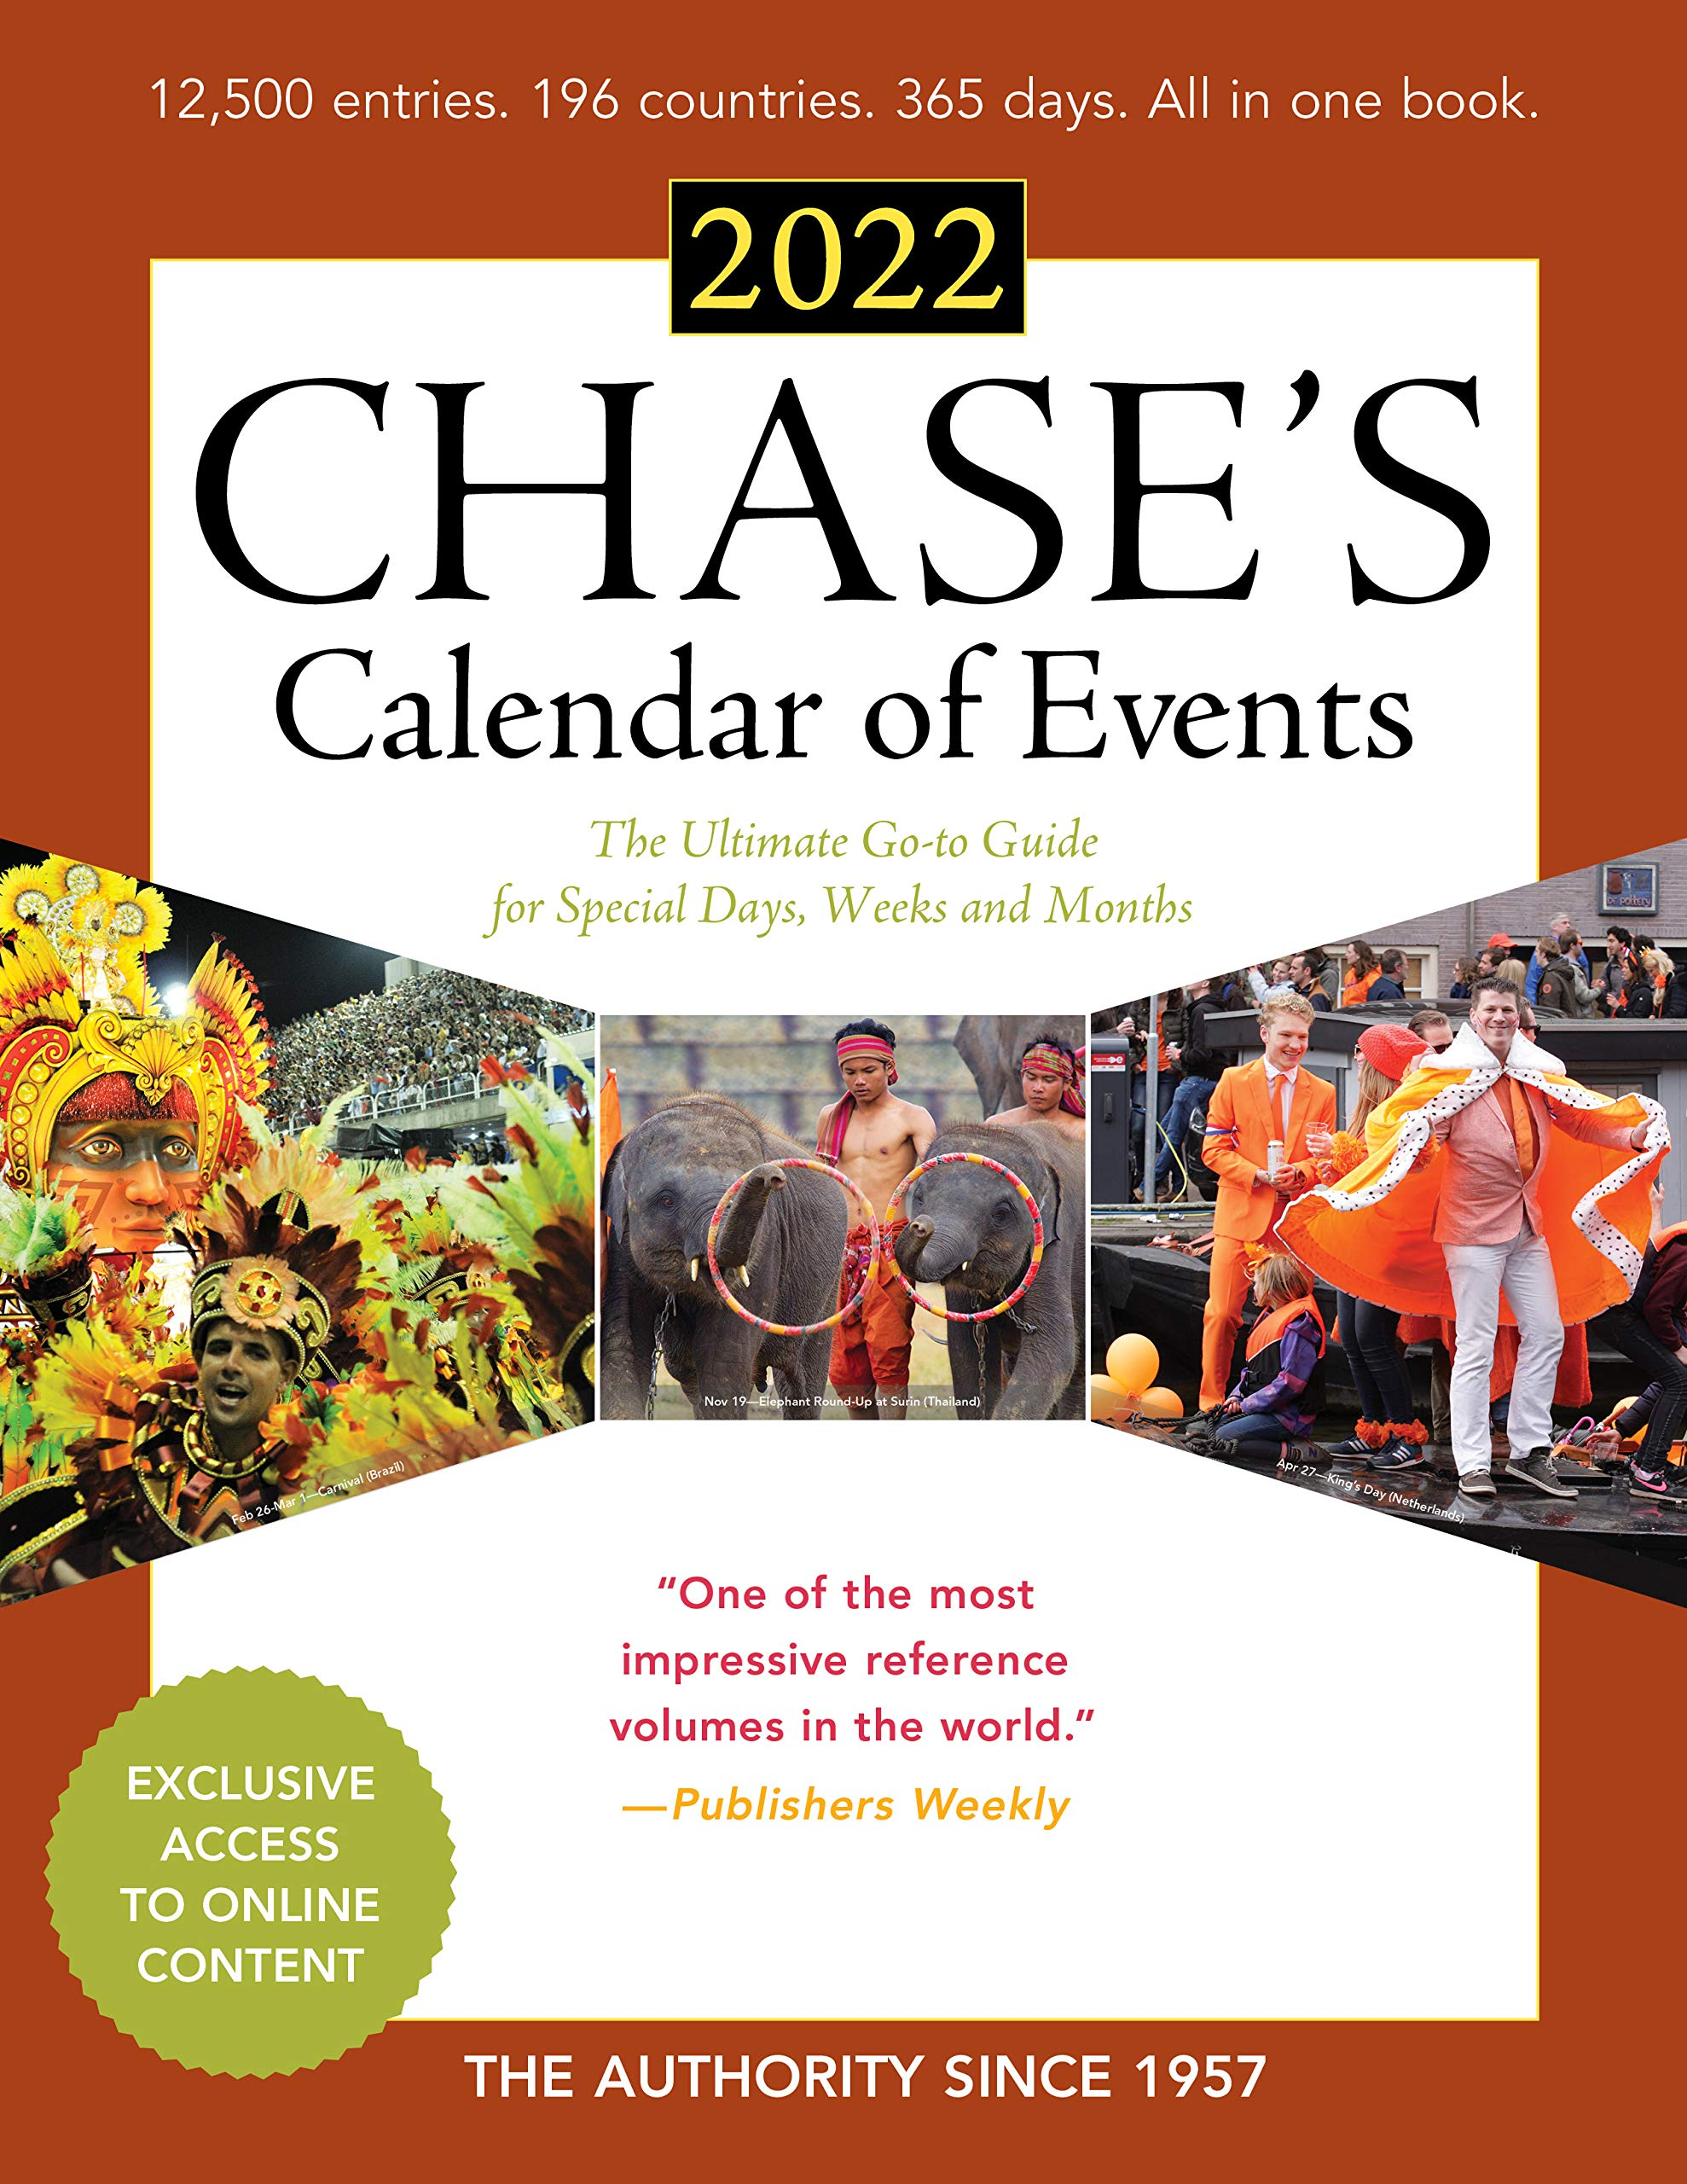 Chase Rewards Calendar 2022.Chase S Calendar Of Events 2022 The Ultimate Go To Guide For Special Days Weeks And Months Editors Of Chase S 9781641435031 Amazon Com Books